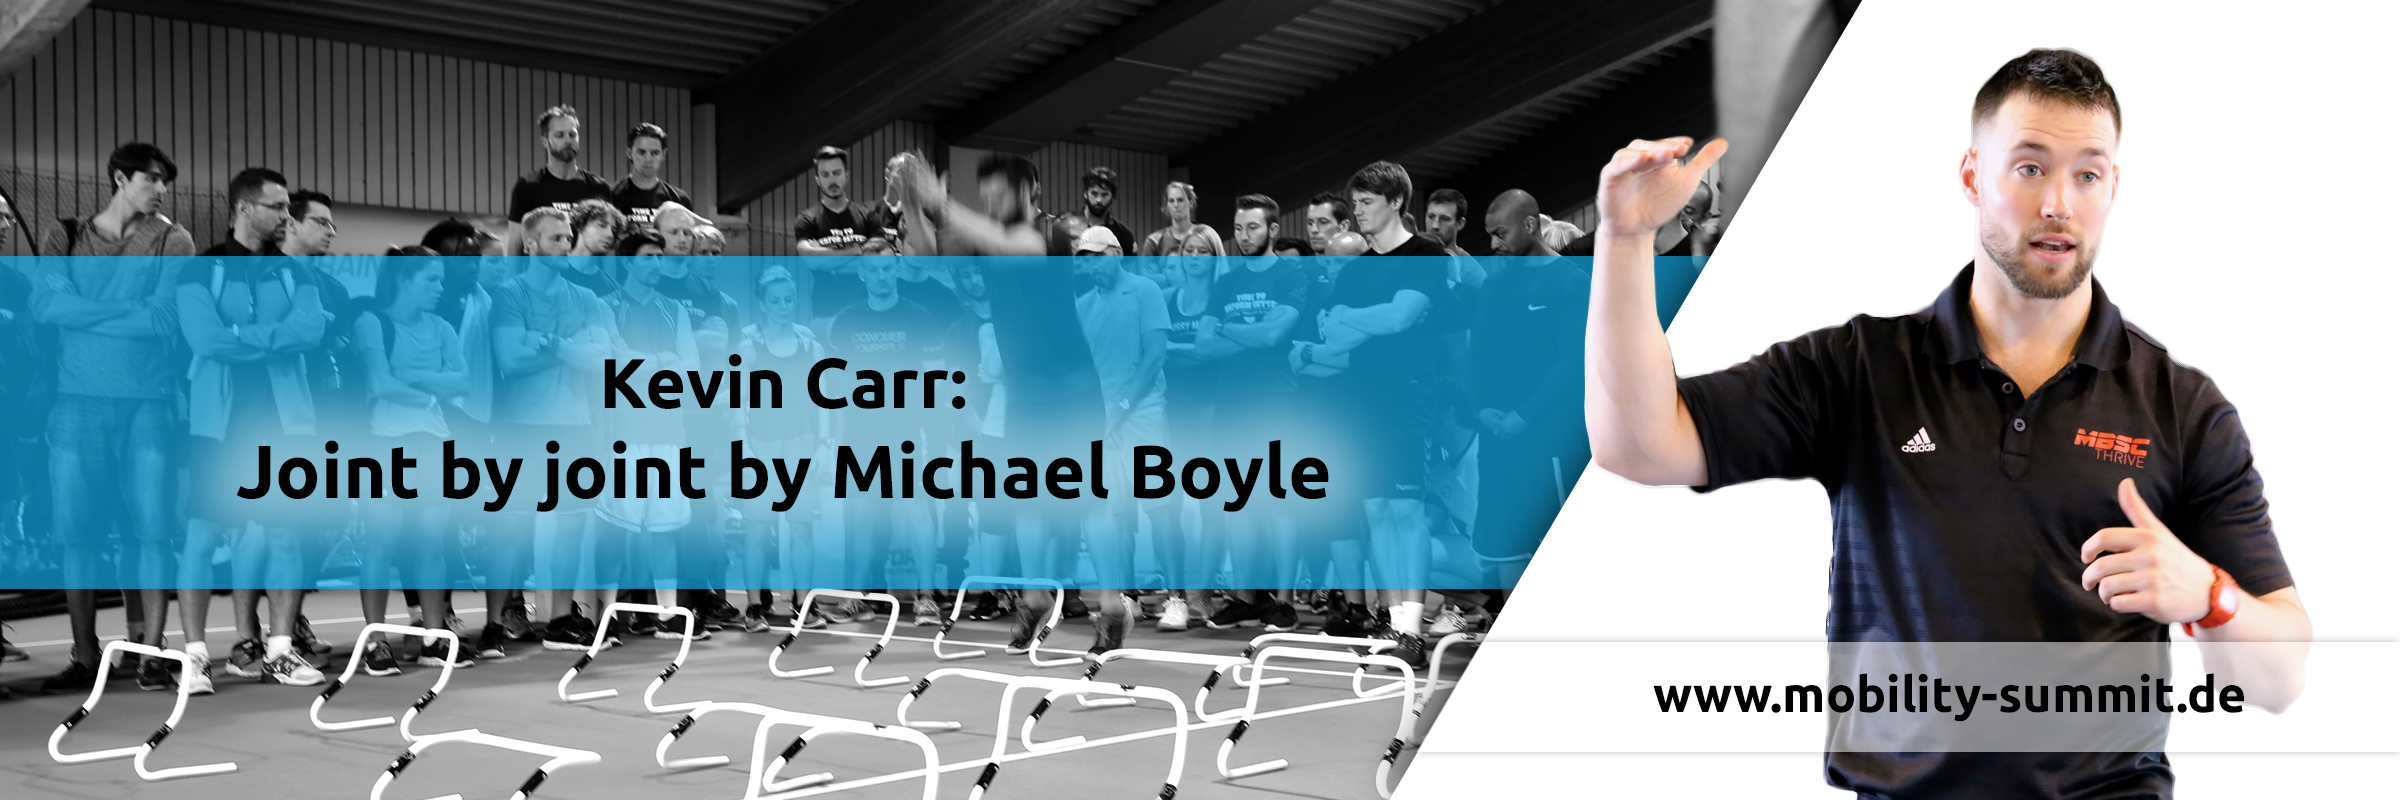 Kevin Carr will be one of the speakers of the Mobility & Fascia Summit 2016